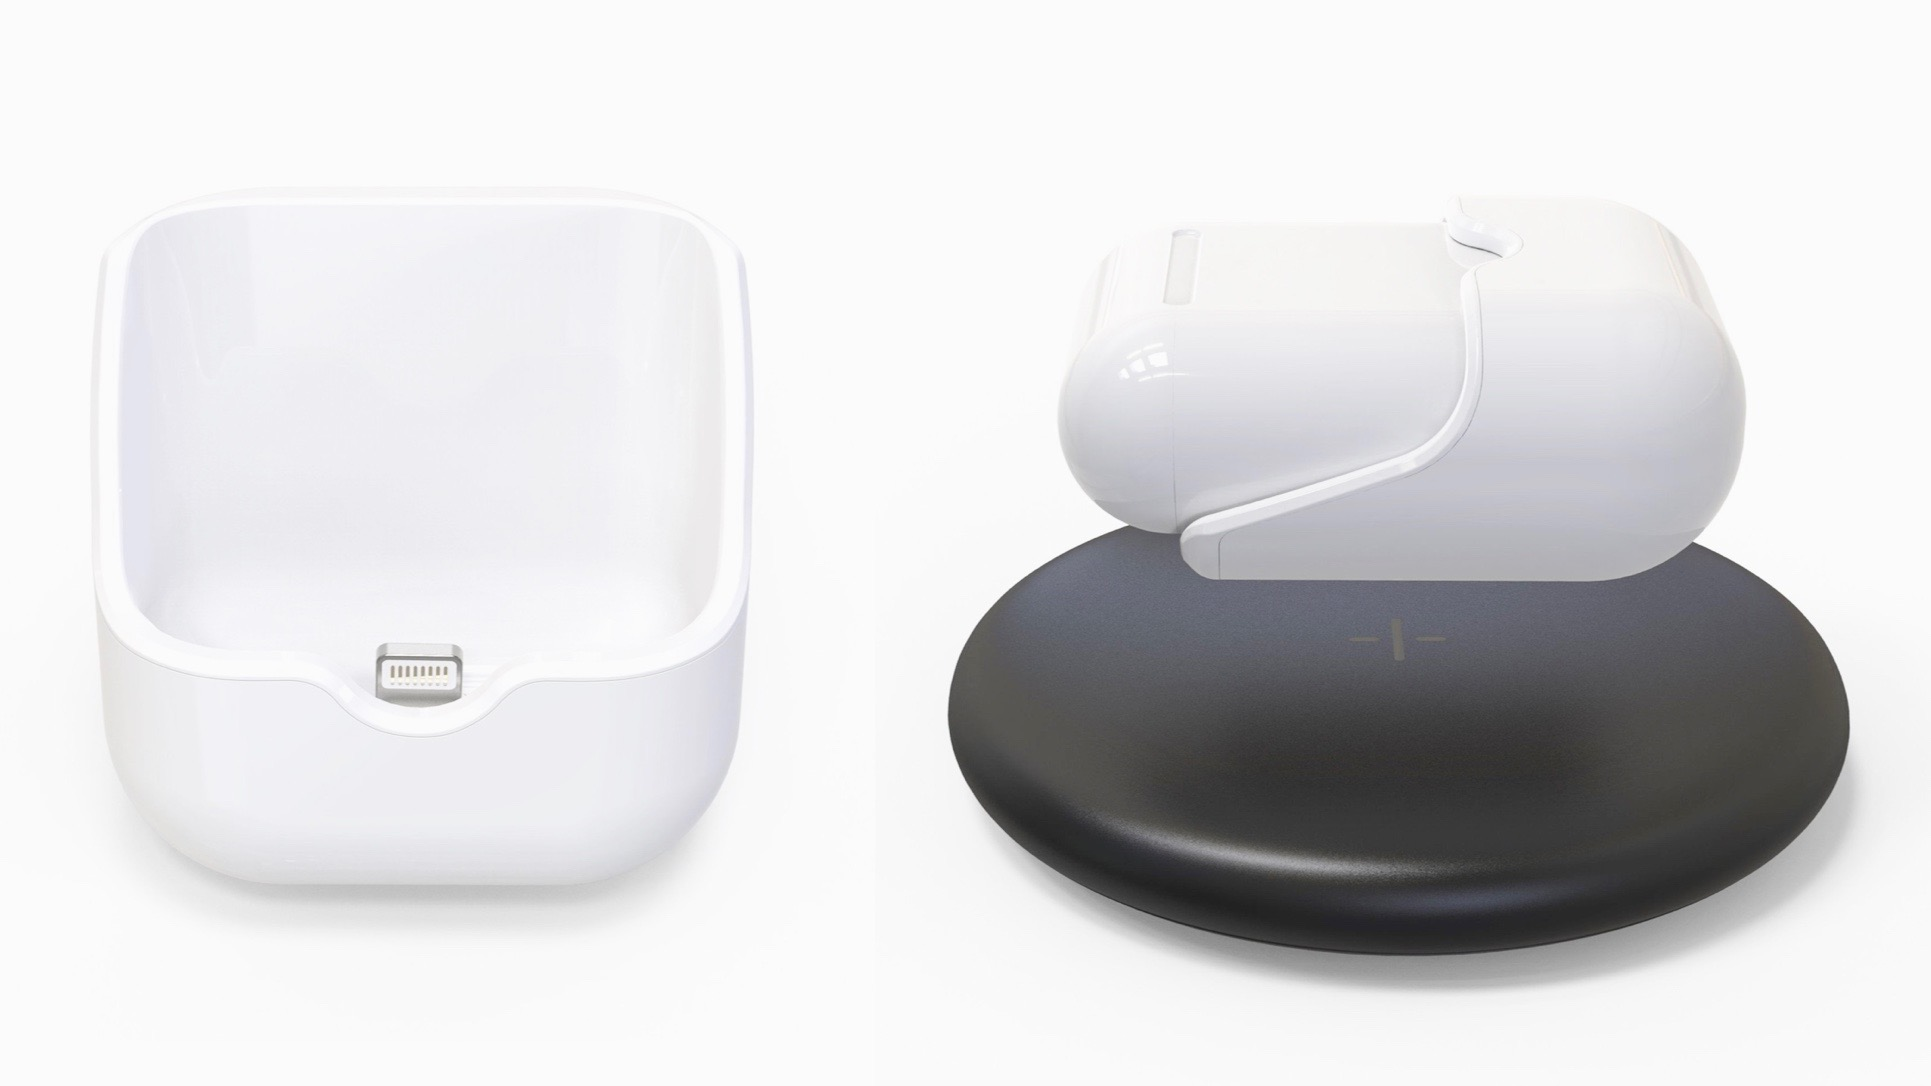 Hyper launches Qi wireless charger for AirPods as Apple remains quiet on its own solution